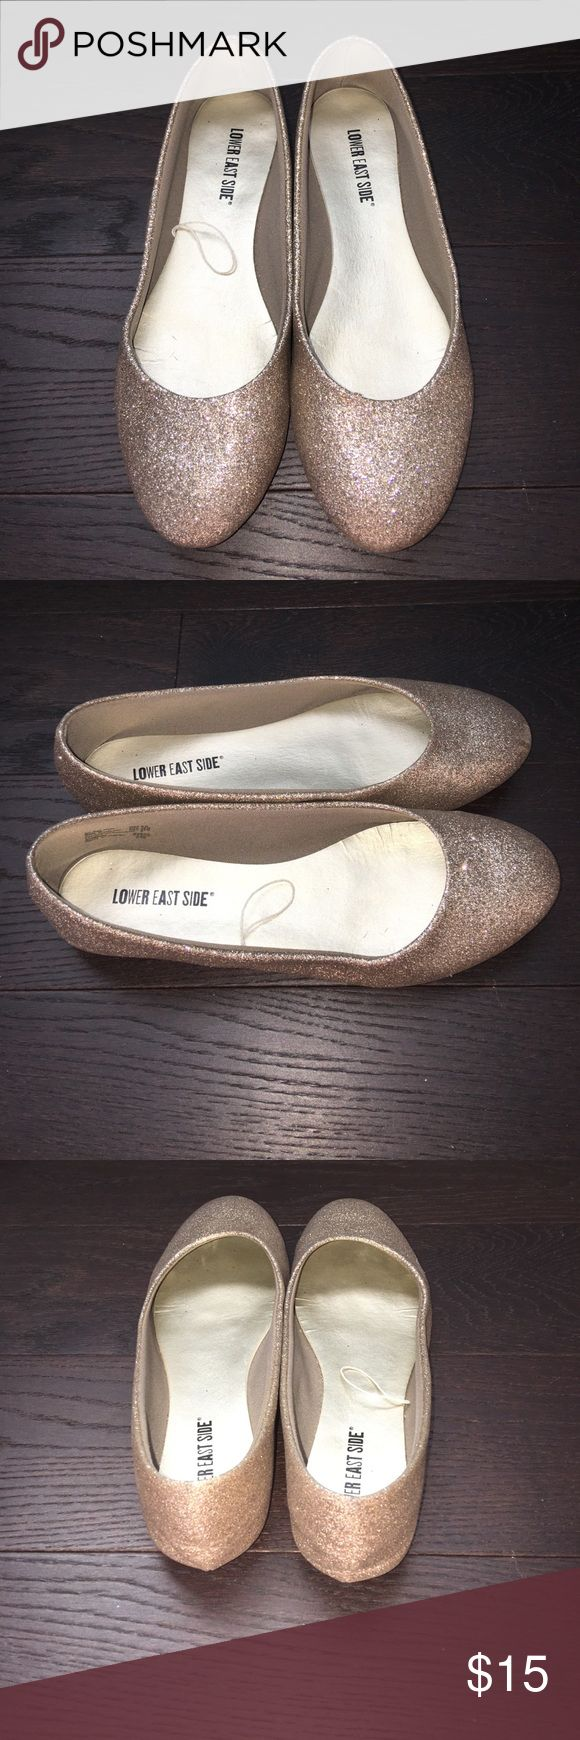 Gold Sparkle Flats. Size 8.5. Gently used gold sparkle flats. Size 8.5. lower east side Shoes Flats & Loafers